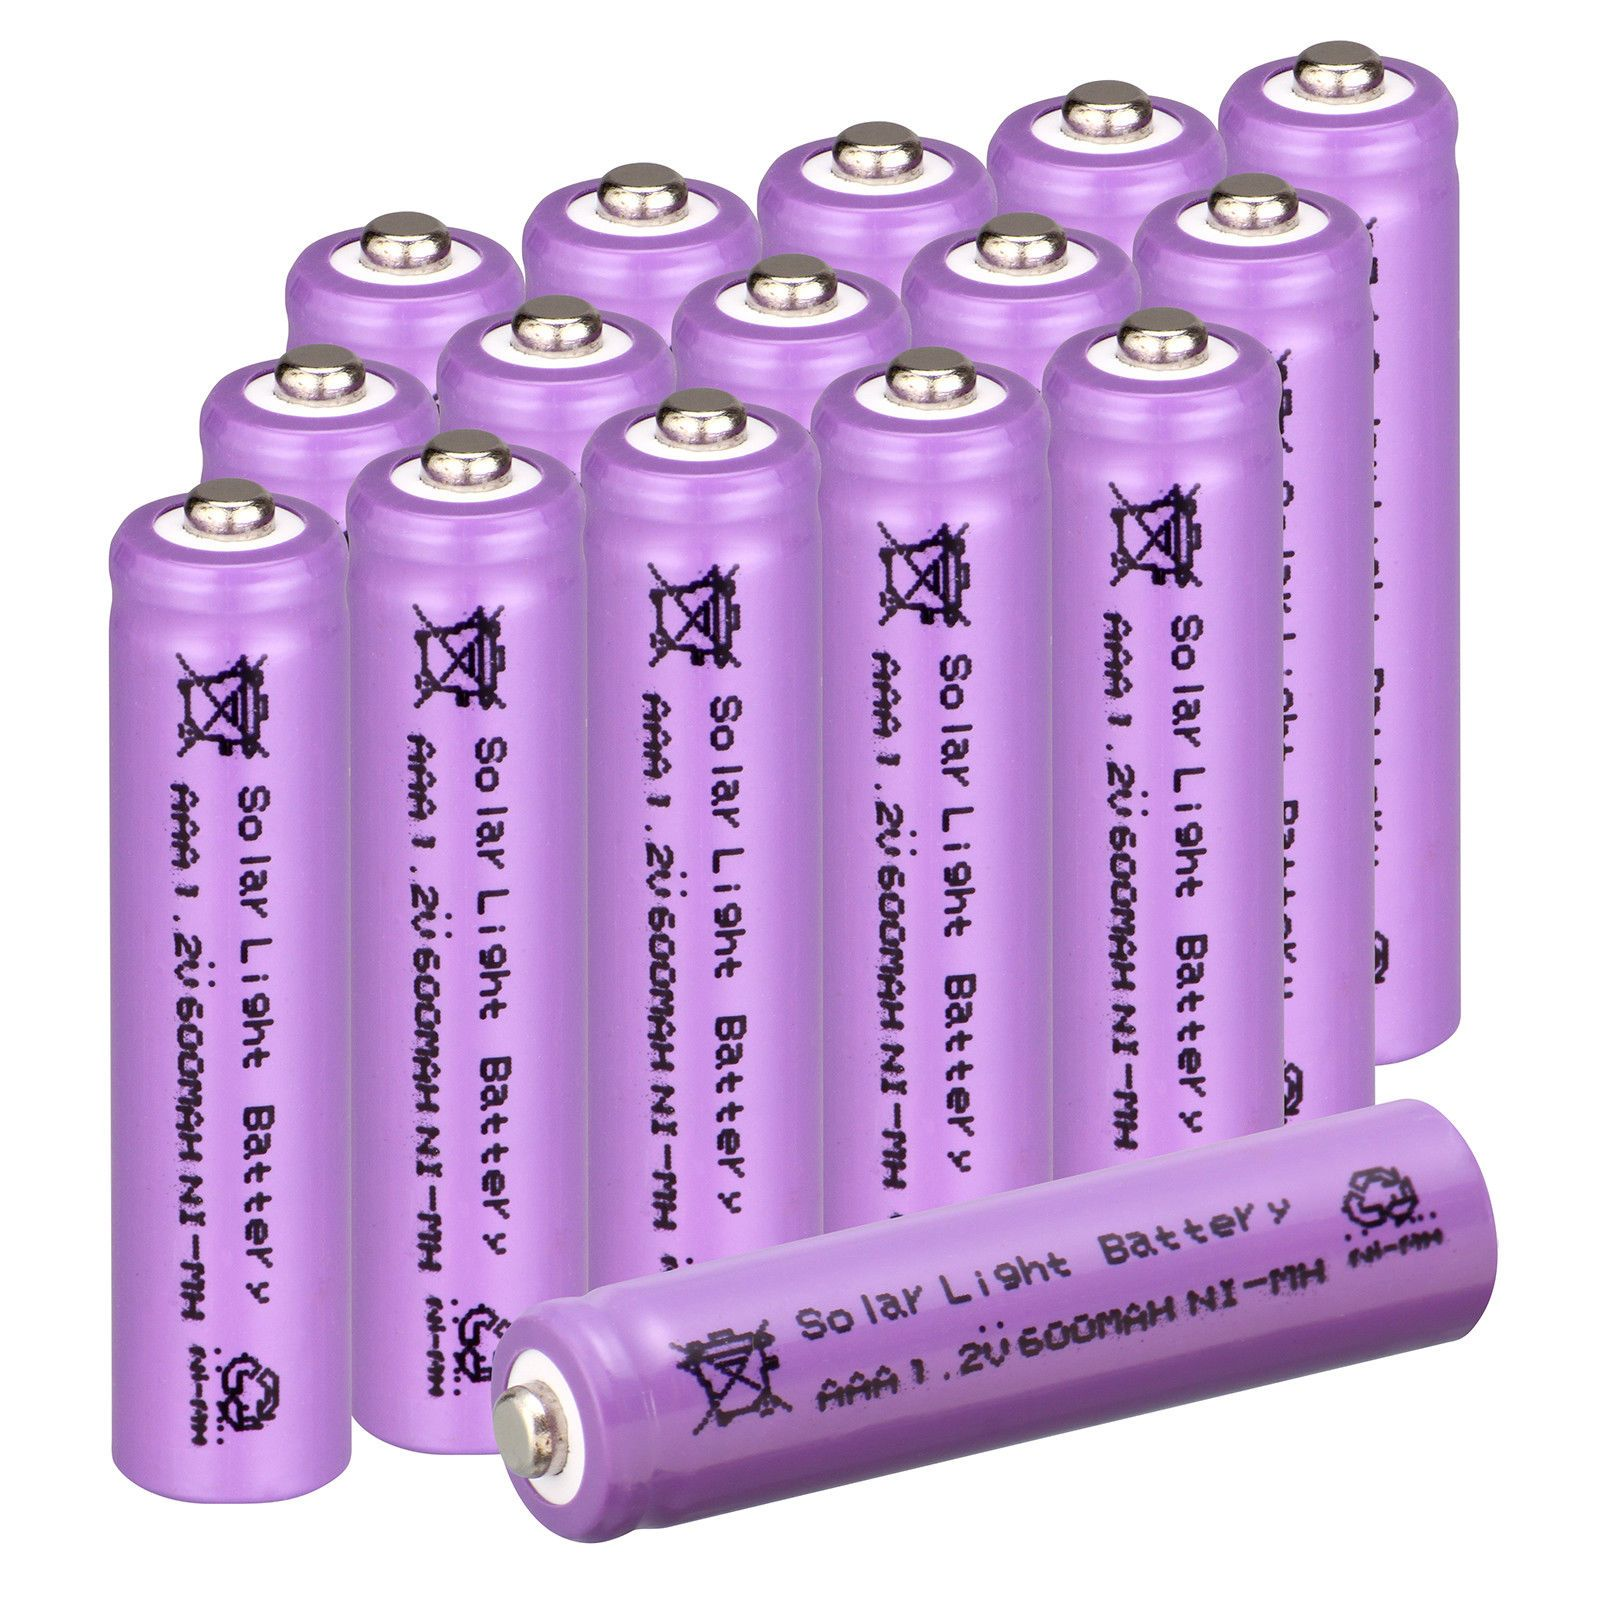 2 4 Aud 2 20 Aaa Ni Mh 600mah 1 2v Garden Solar Light Rechargeable Batteries Purple Ebay Electronics Solar Battery Battery Lights Solar Lights